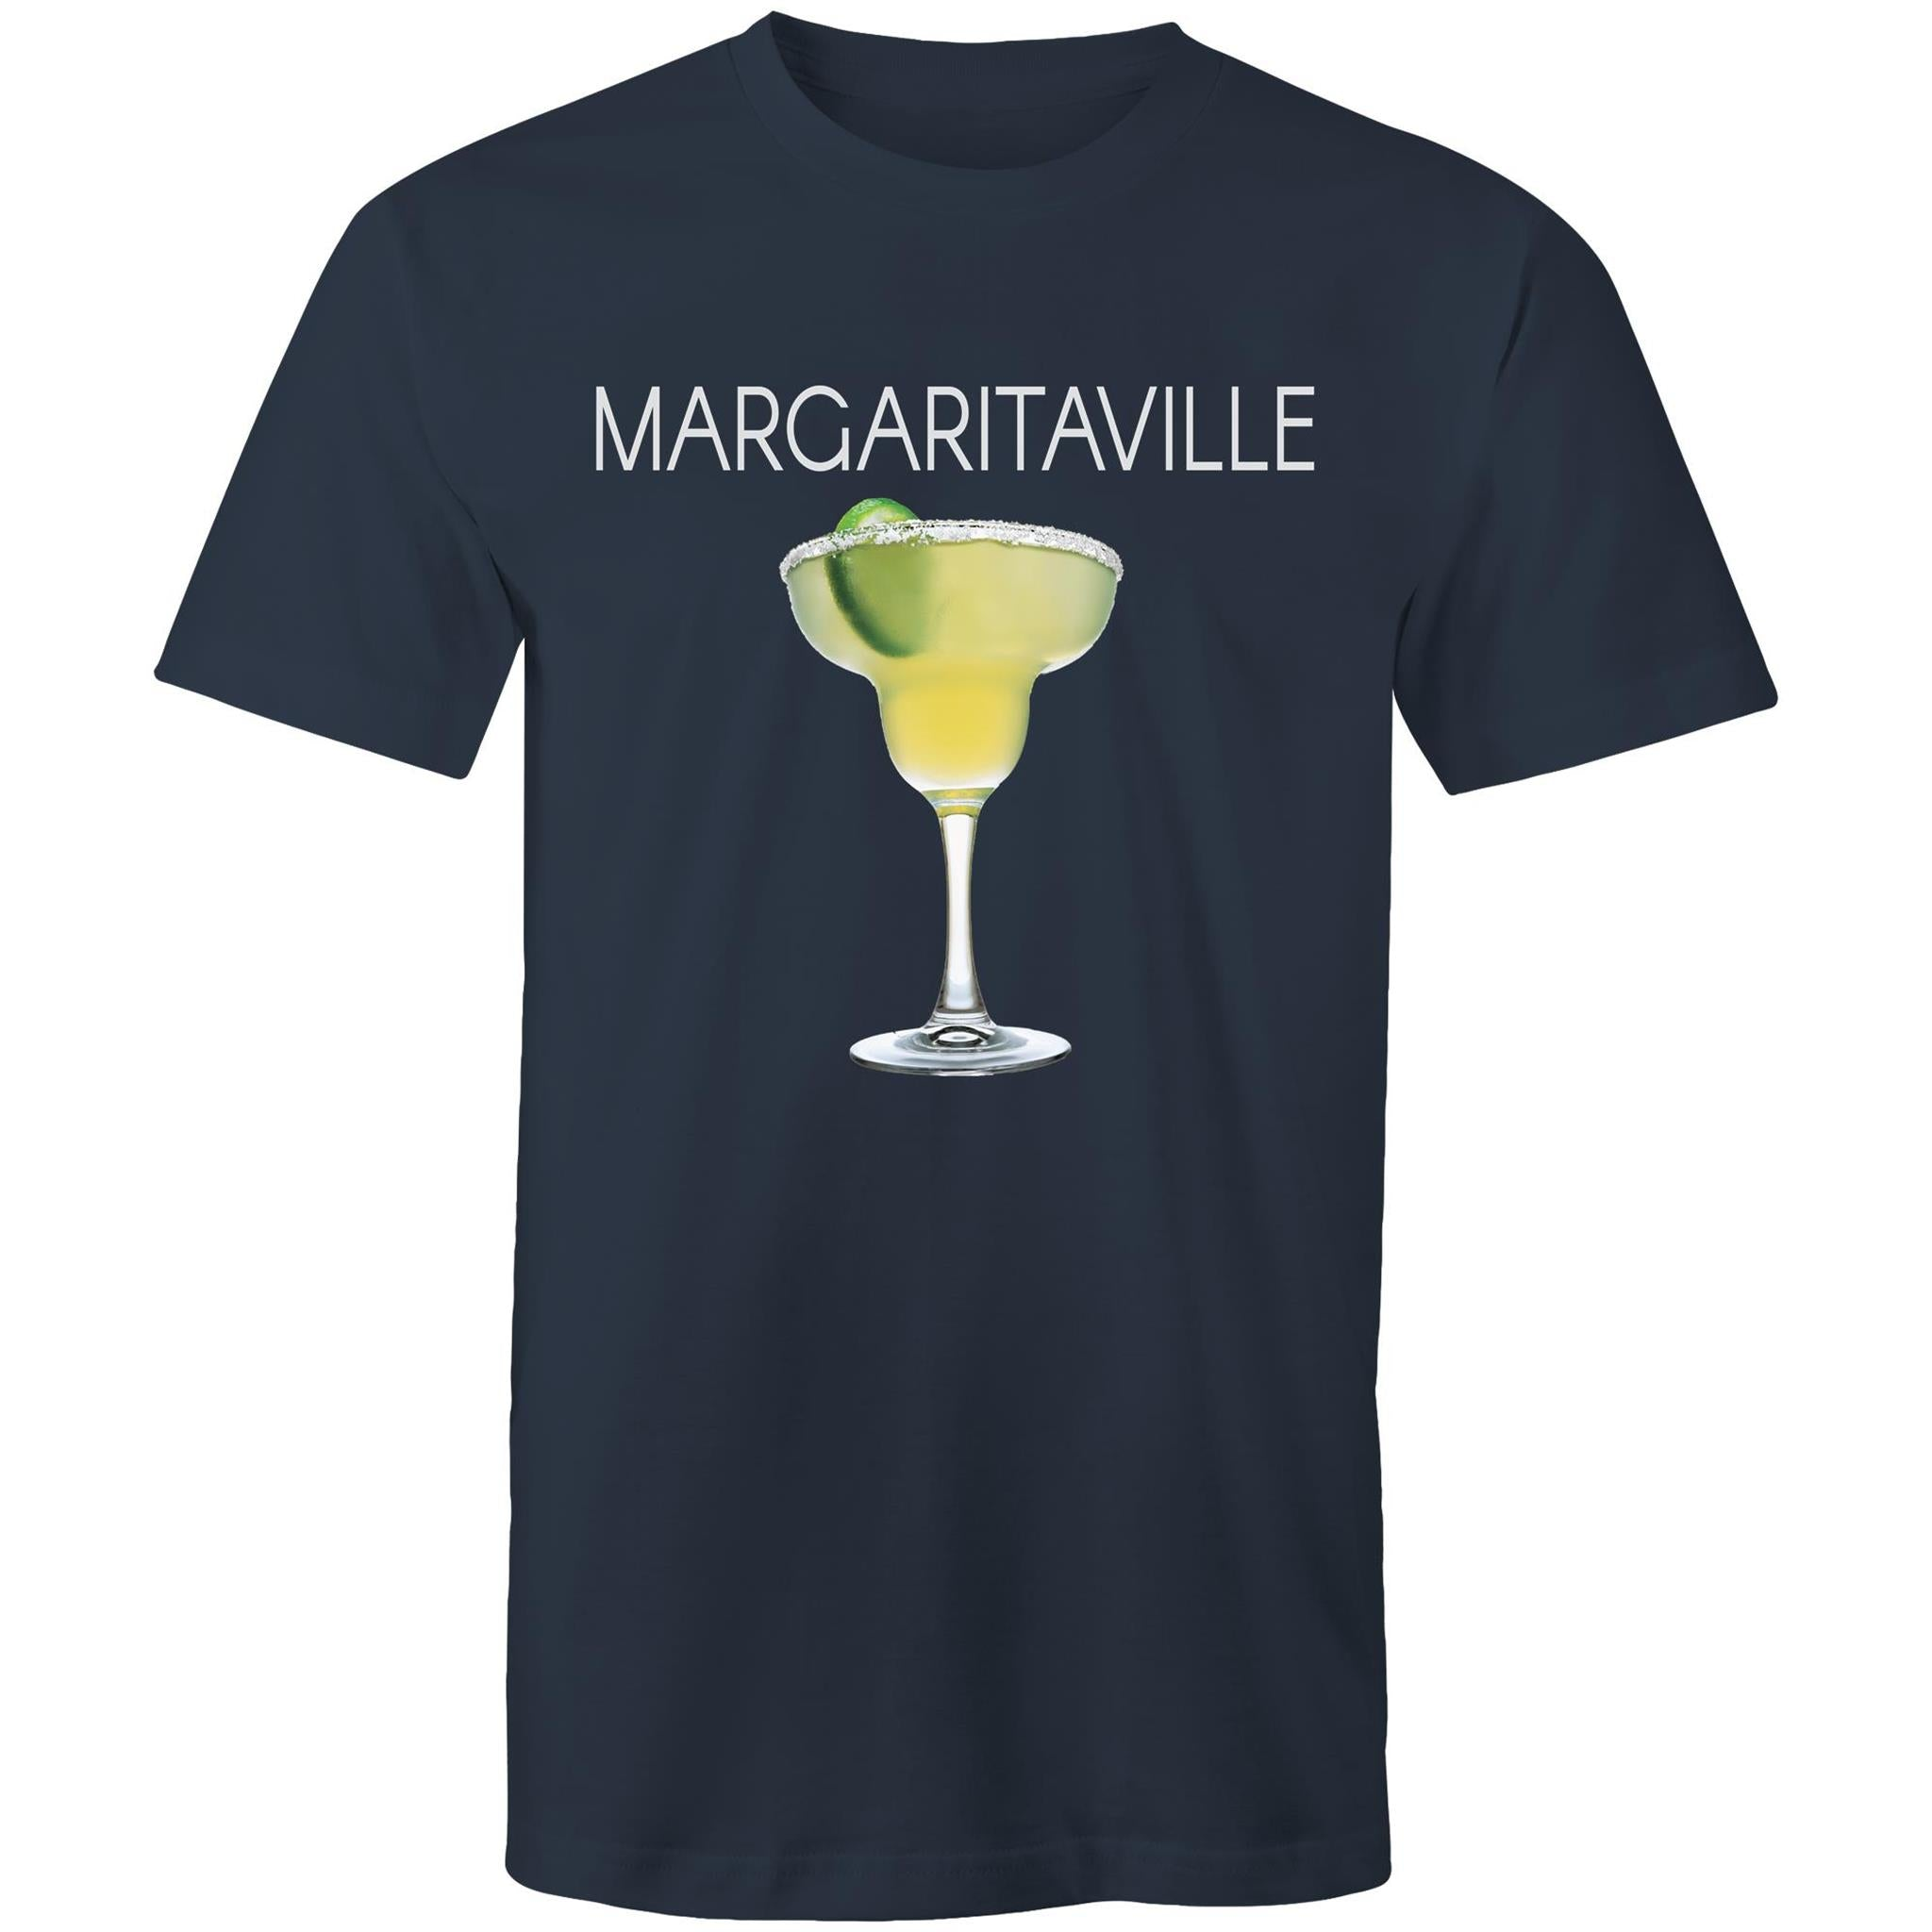 A navy blue T-shirt with an image of a frozen margarita, with Margaritaville written across the chest.